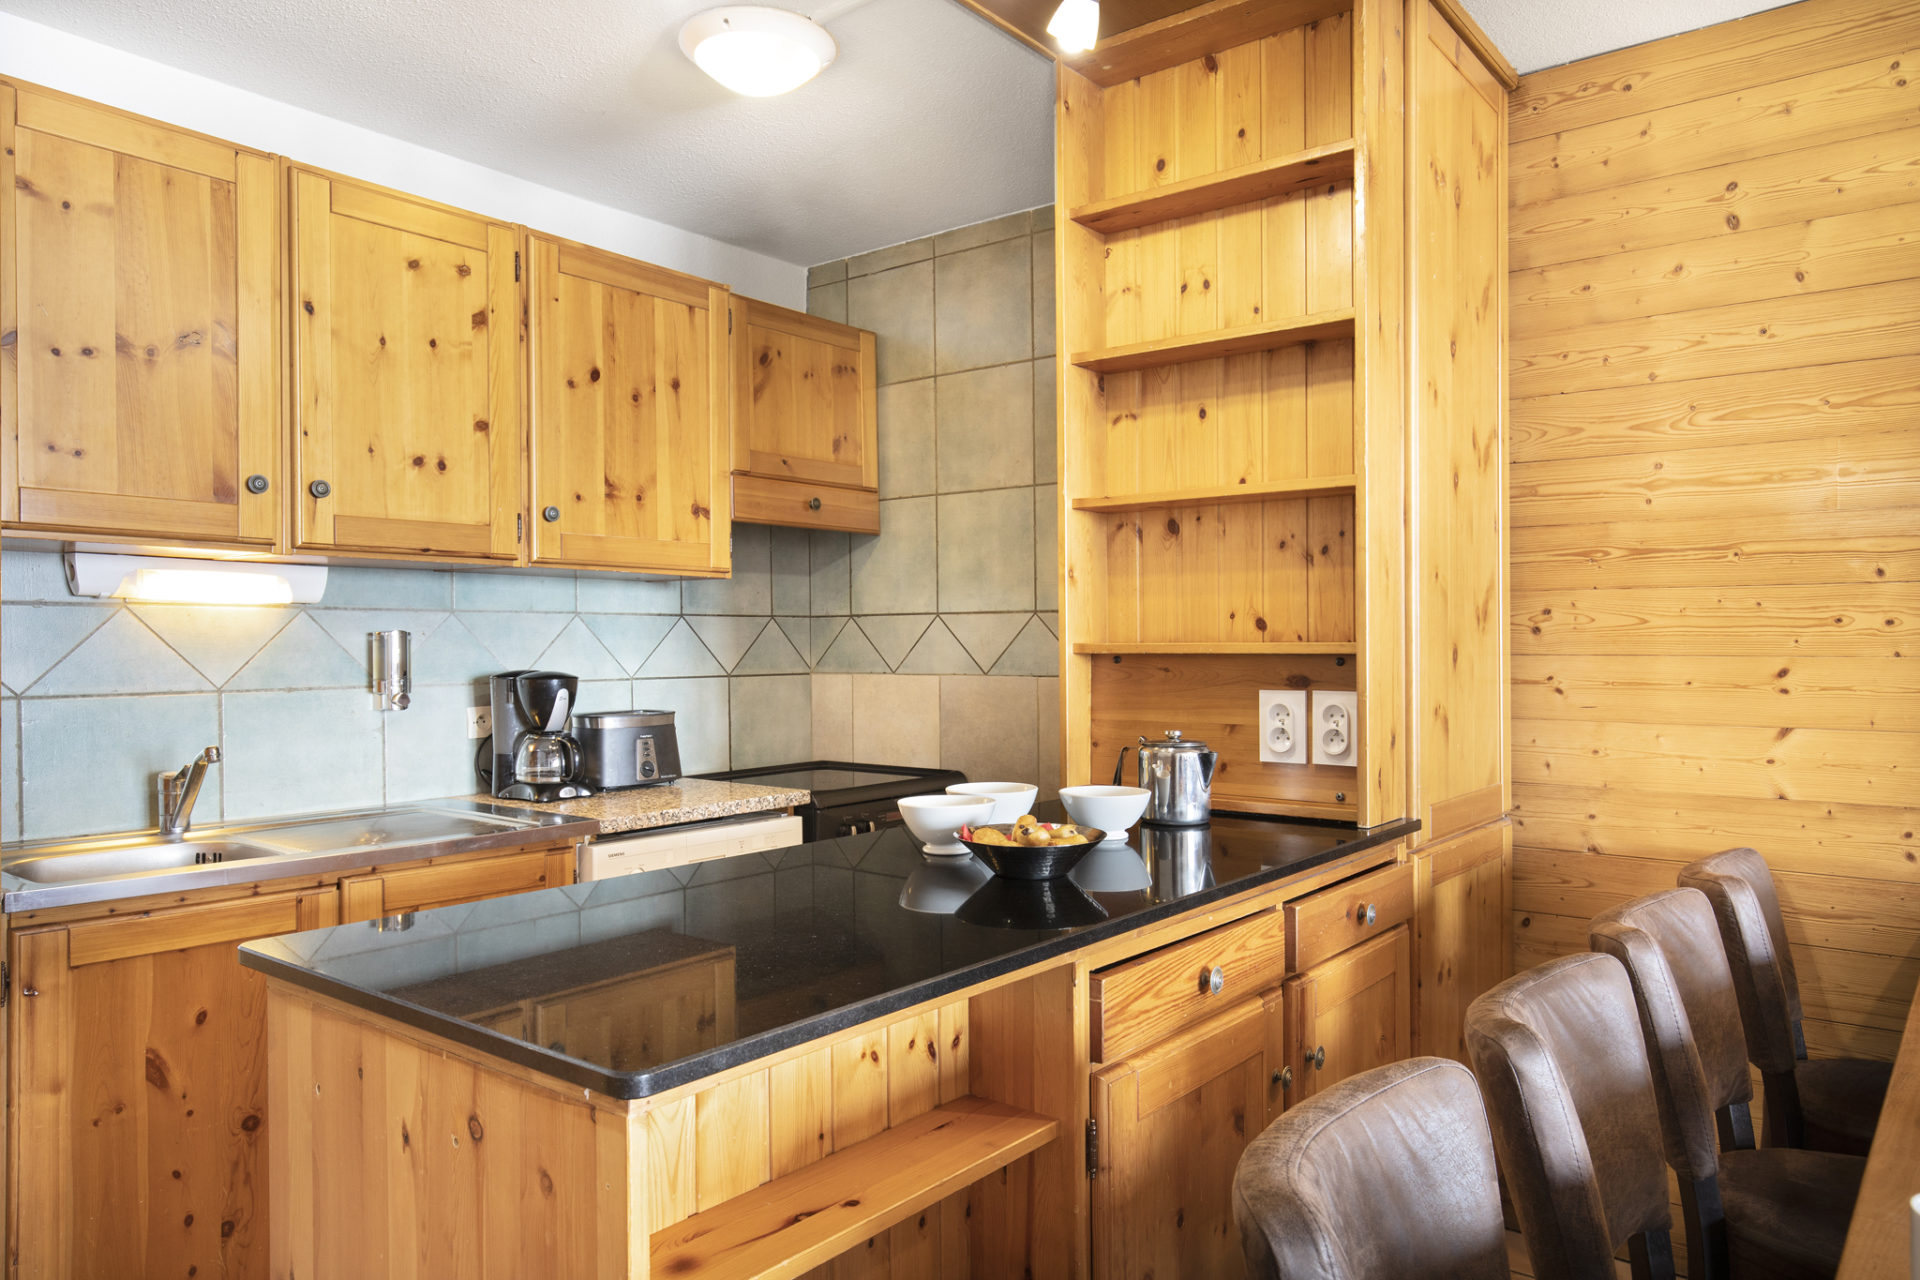 Image of the kitchen facilities in an apartment in Les Balcons de Val Thorens